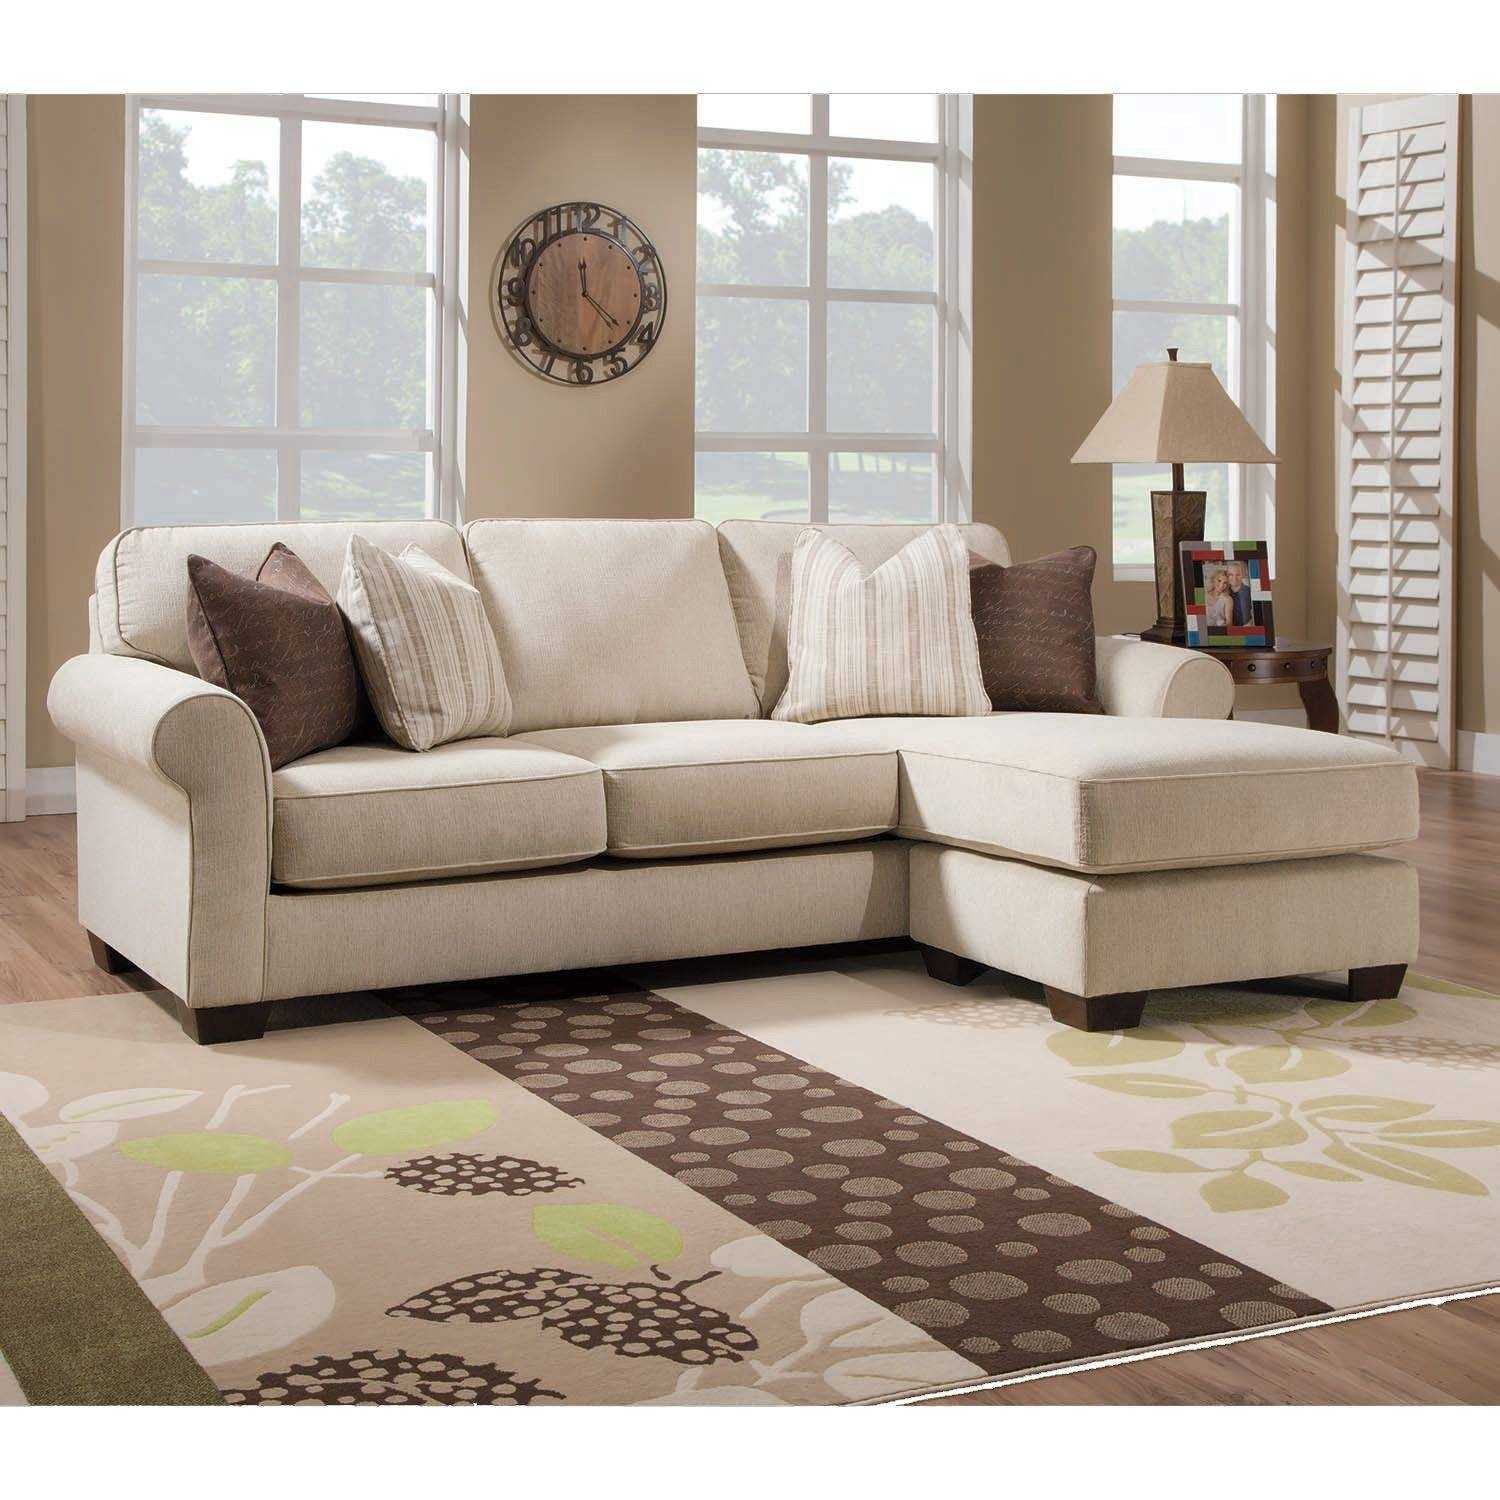 12 Best Of Berkline Sectional Sofa intended for Berkline Sectional Sofa (Image 1 of 30)